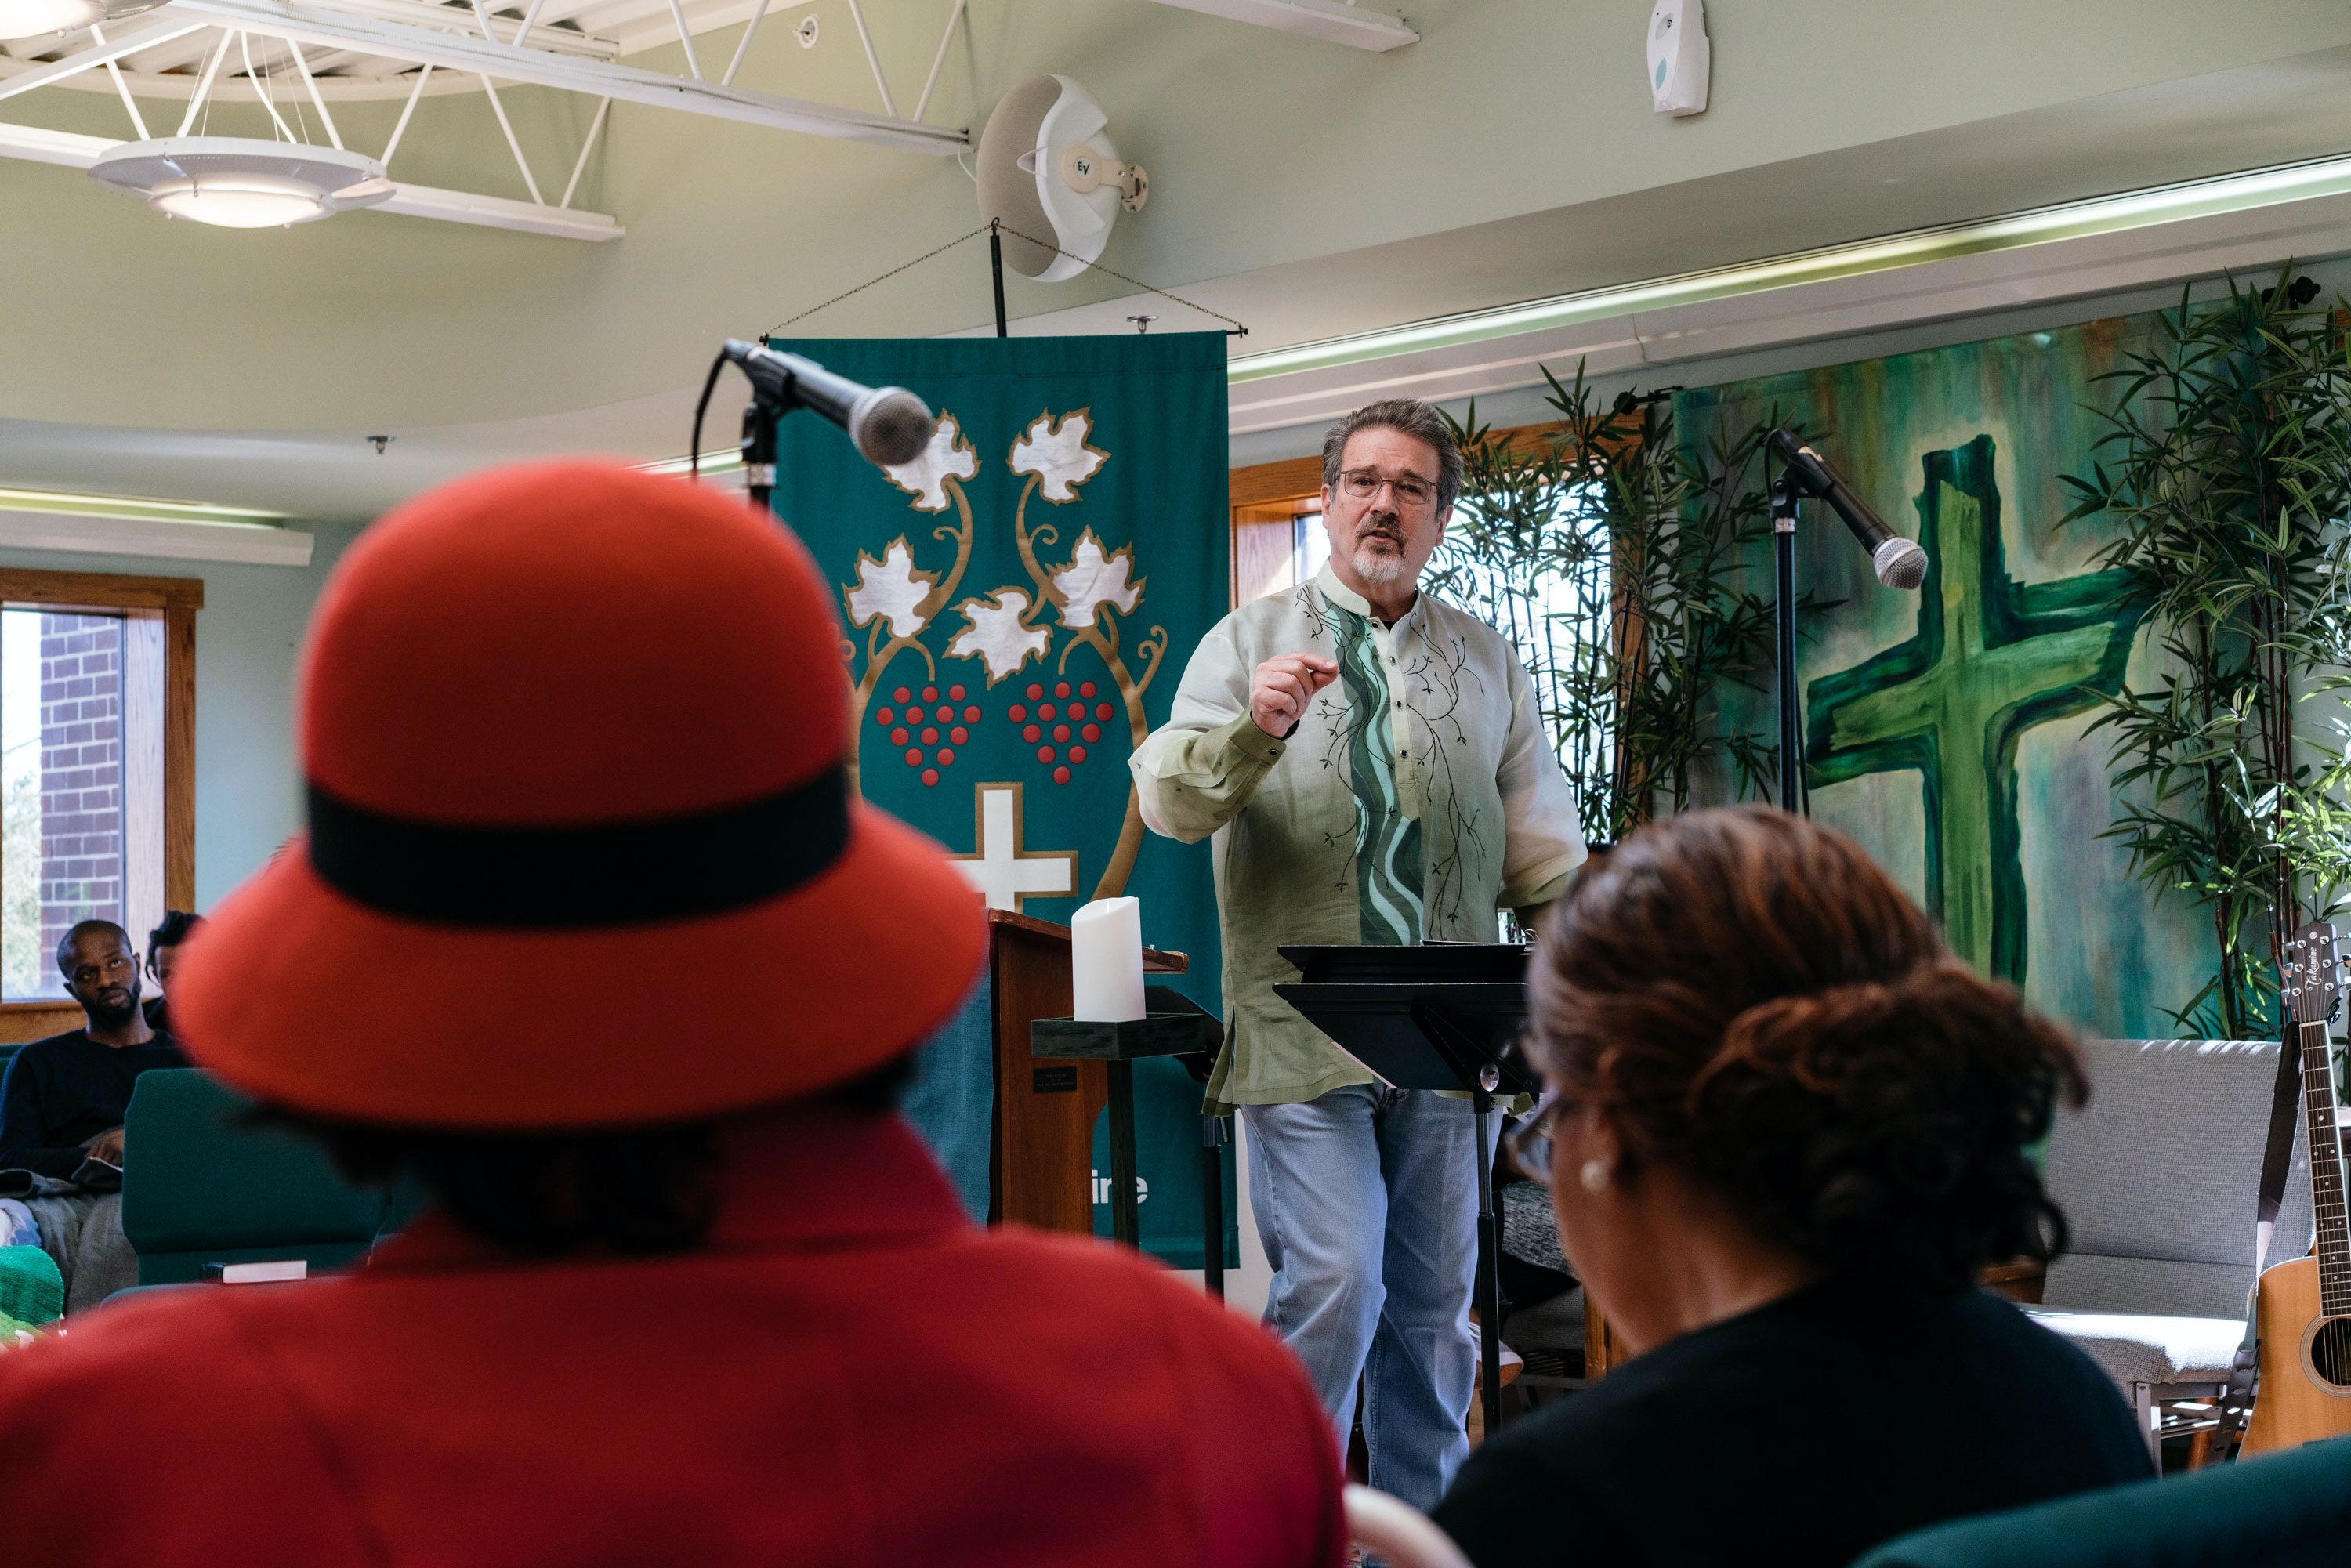 Pastor Keary Kincannon, gives a sermon at Rising Hope Mission Church in Alexandria, Va. on Feb 26, 2017. Kincannon will be present during President Trump's next address to the session of congress, a guest of Virginia Senator Mark Warner.